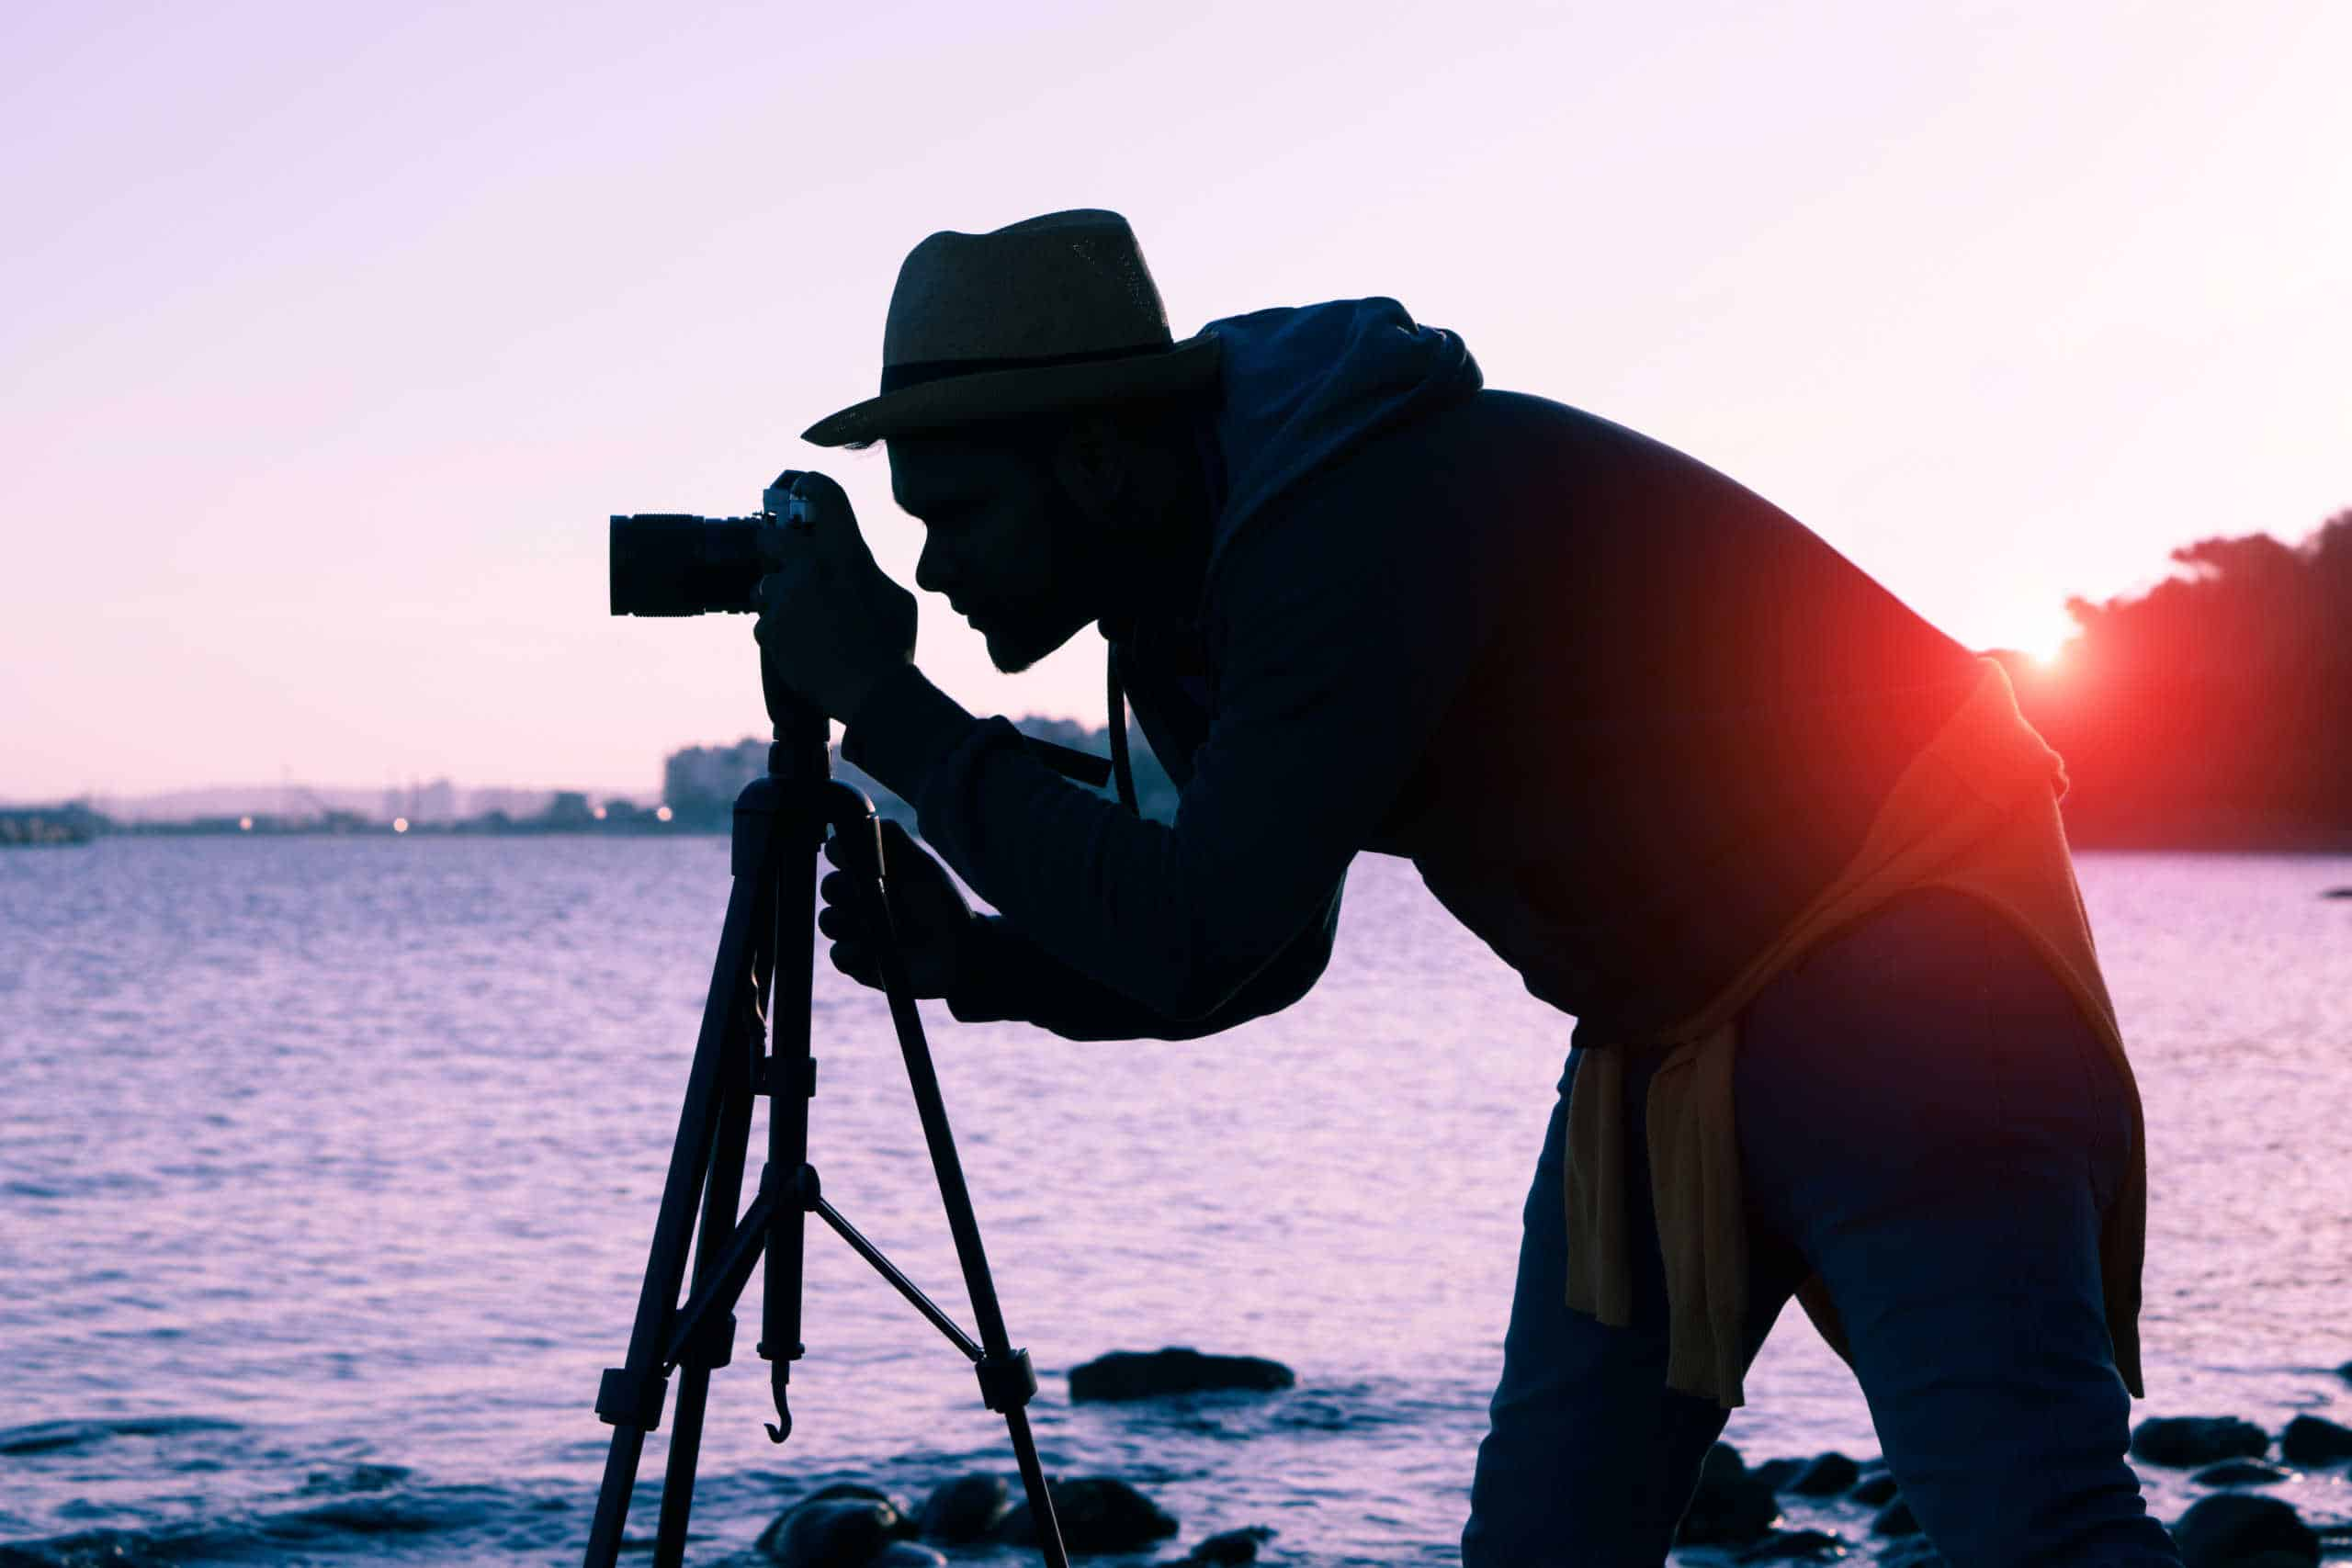 photographer using shutter speed priority for low light